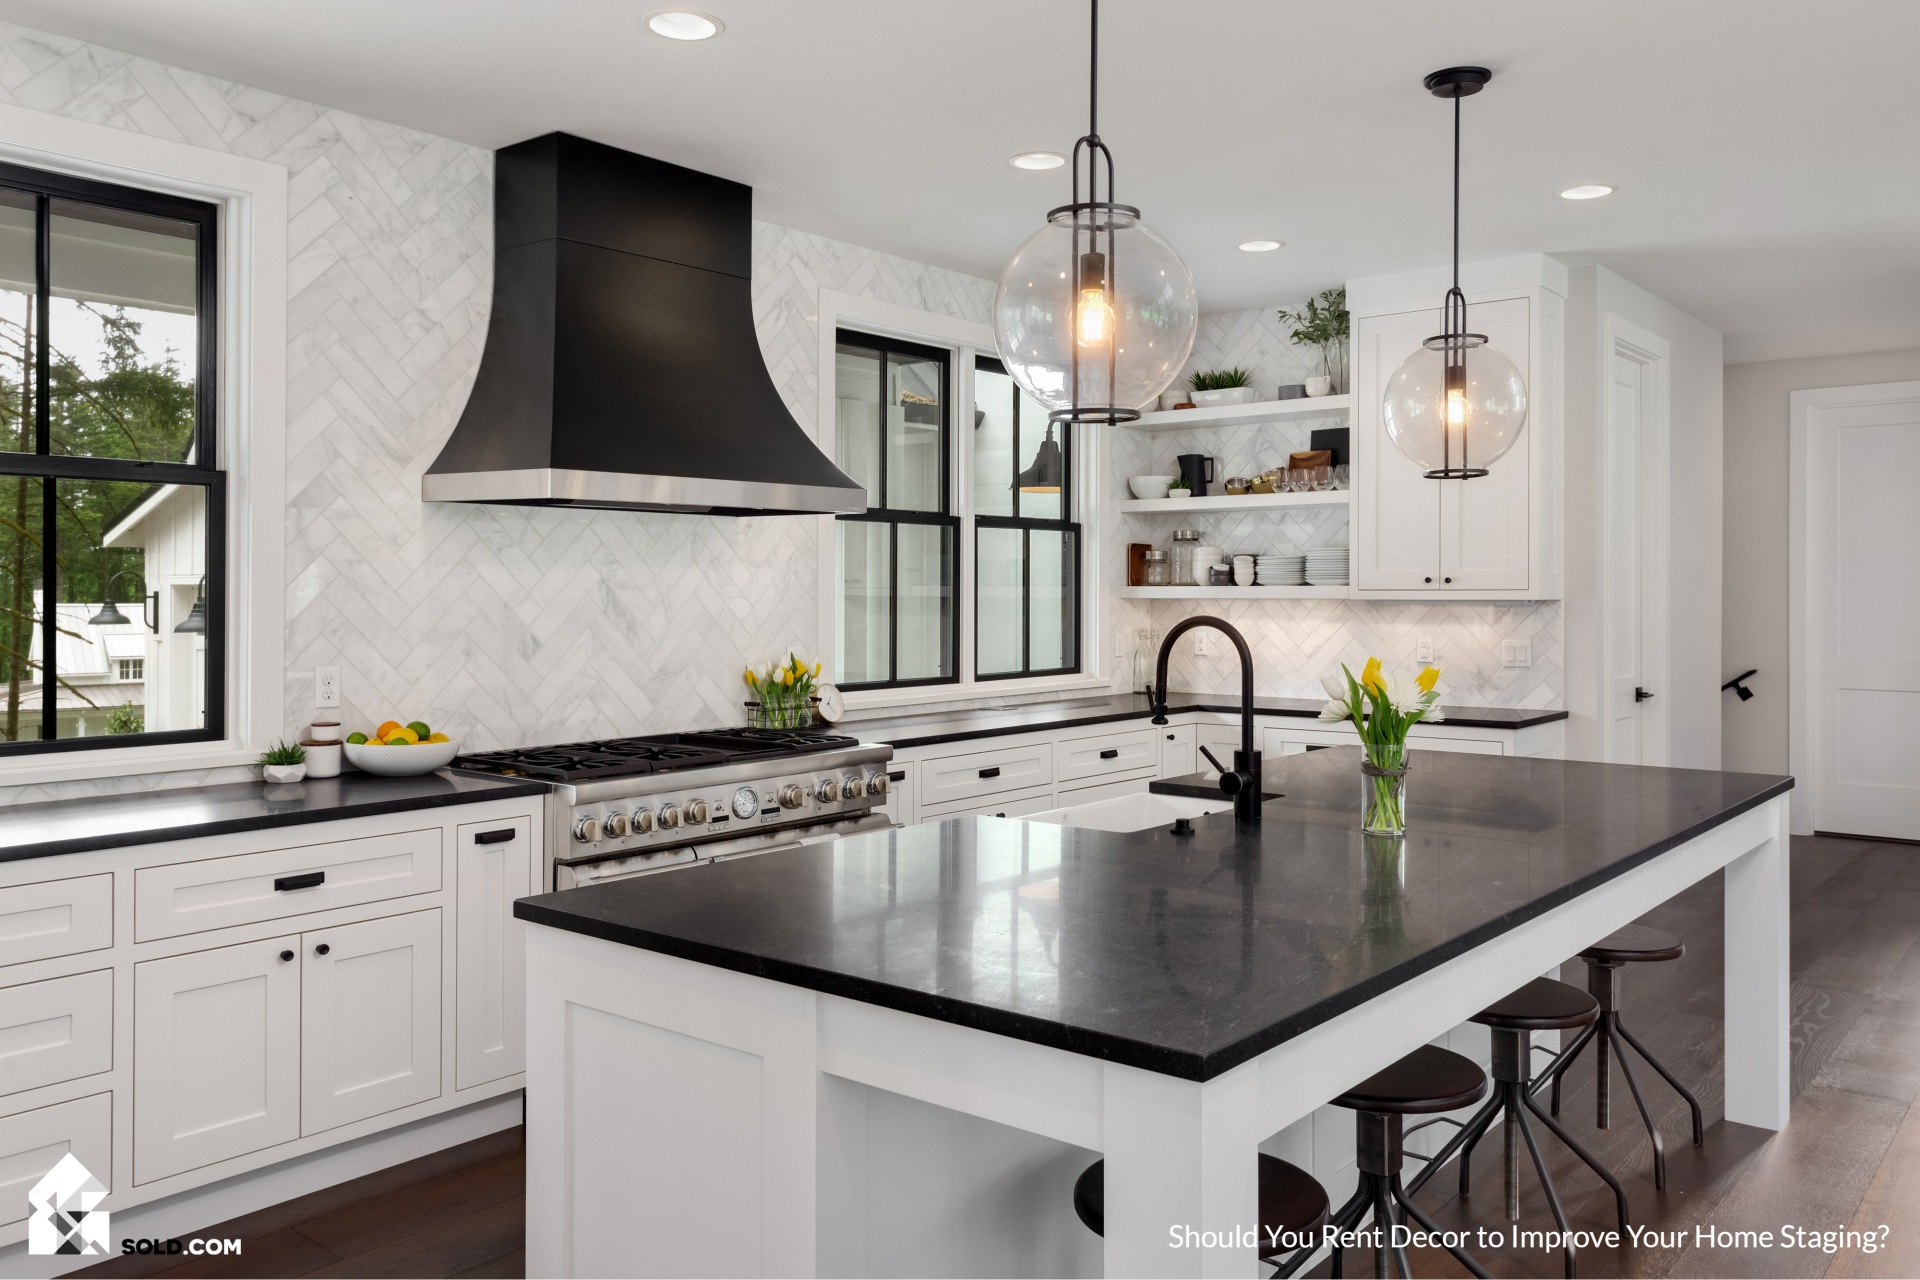 Should You Rent Decor to Improve Your Home Staging?